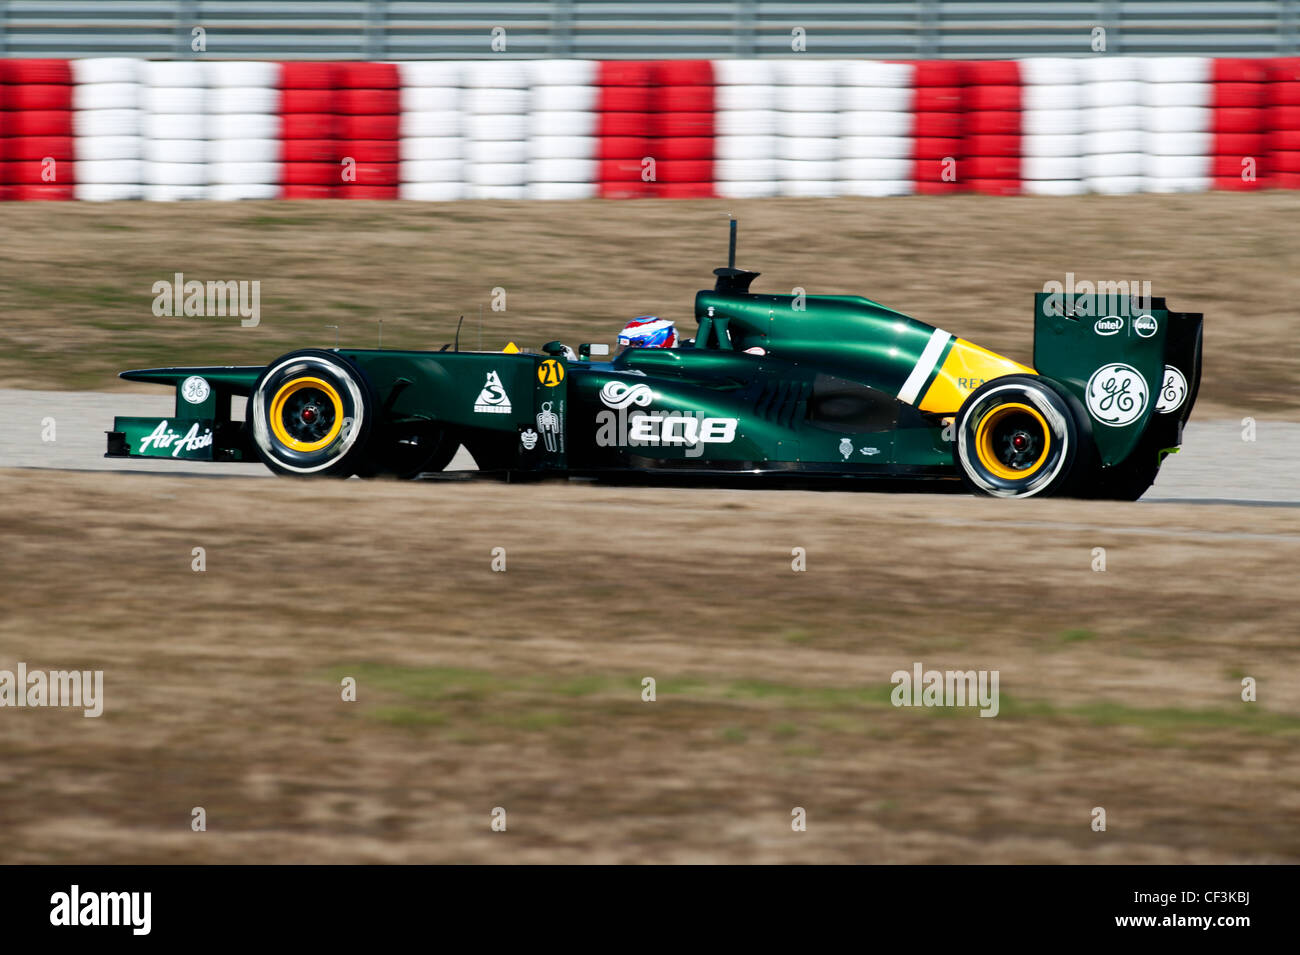 Vitaly Petrov (RUS), Caterham F1 Team-Renault CT-01, racecar during Formula 1 testing sessions near Barcelona in - Stock Image